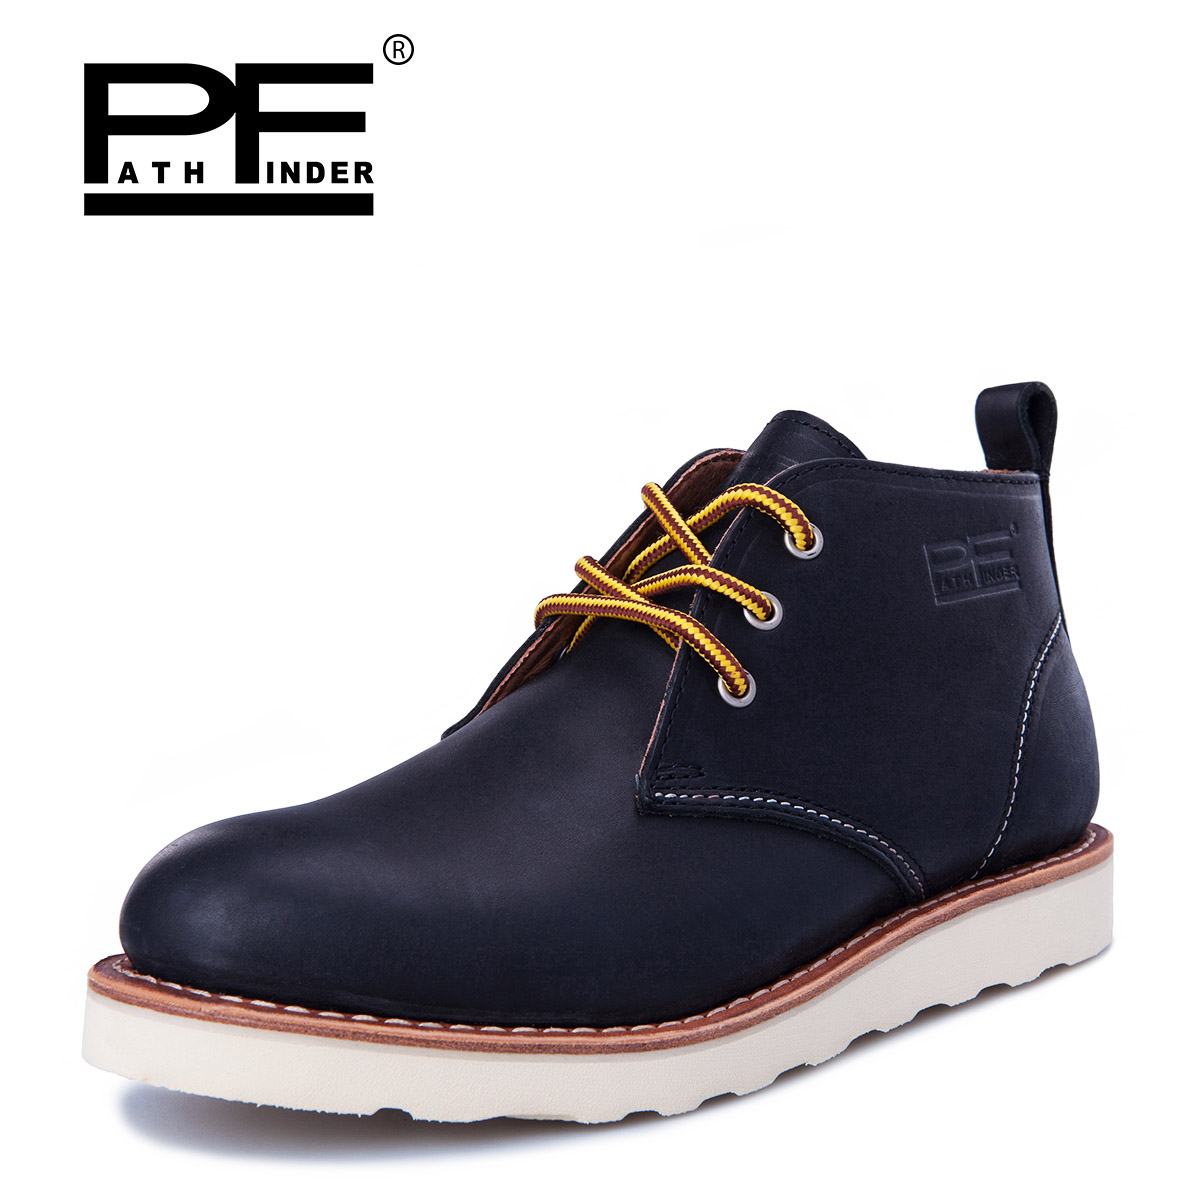 Pathfinder High Quality Lace Up Men Boots, Casual Winter Genuine Leather Boots, Big Size Fur Ankle Martins M Shoes john adair s 100 greatest ideas for personal success